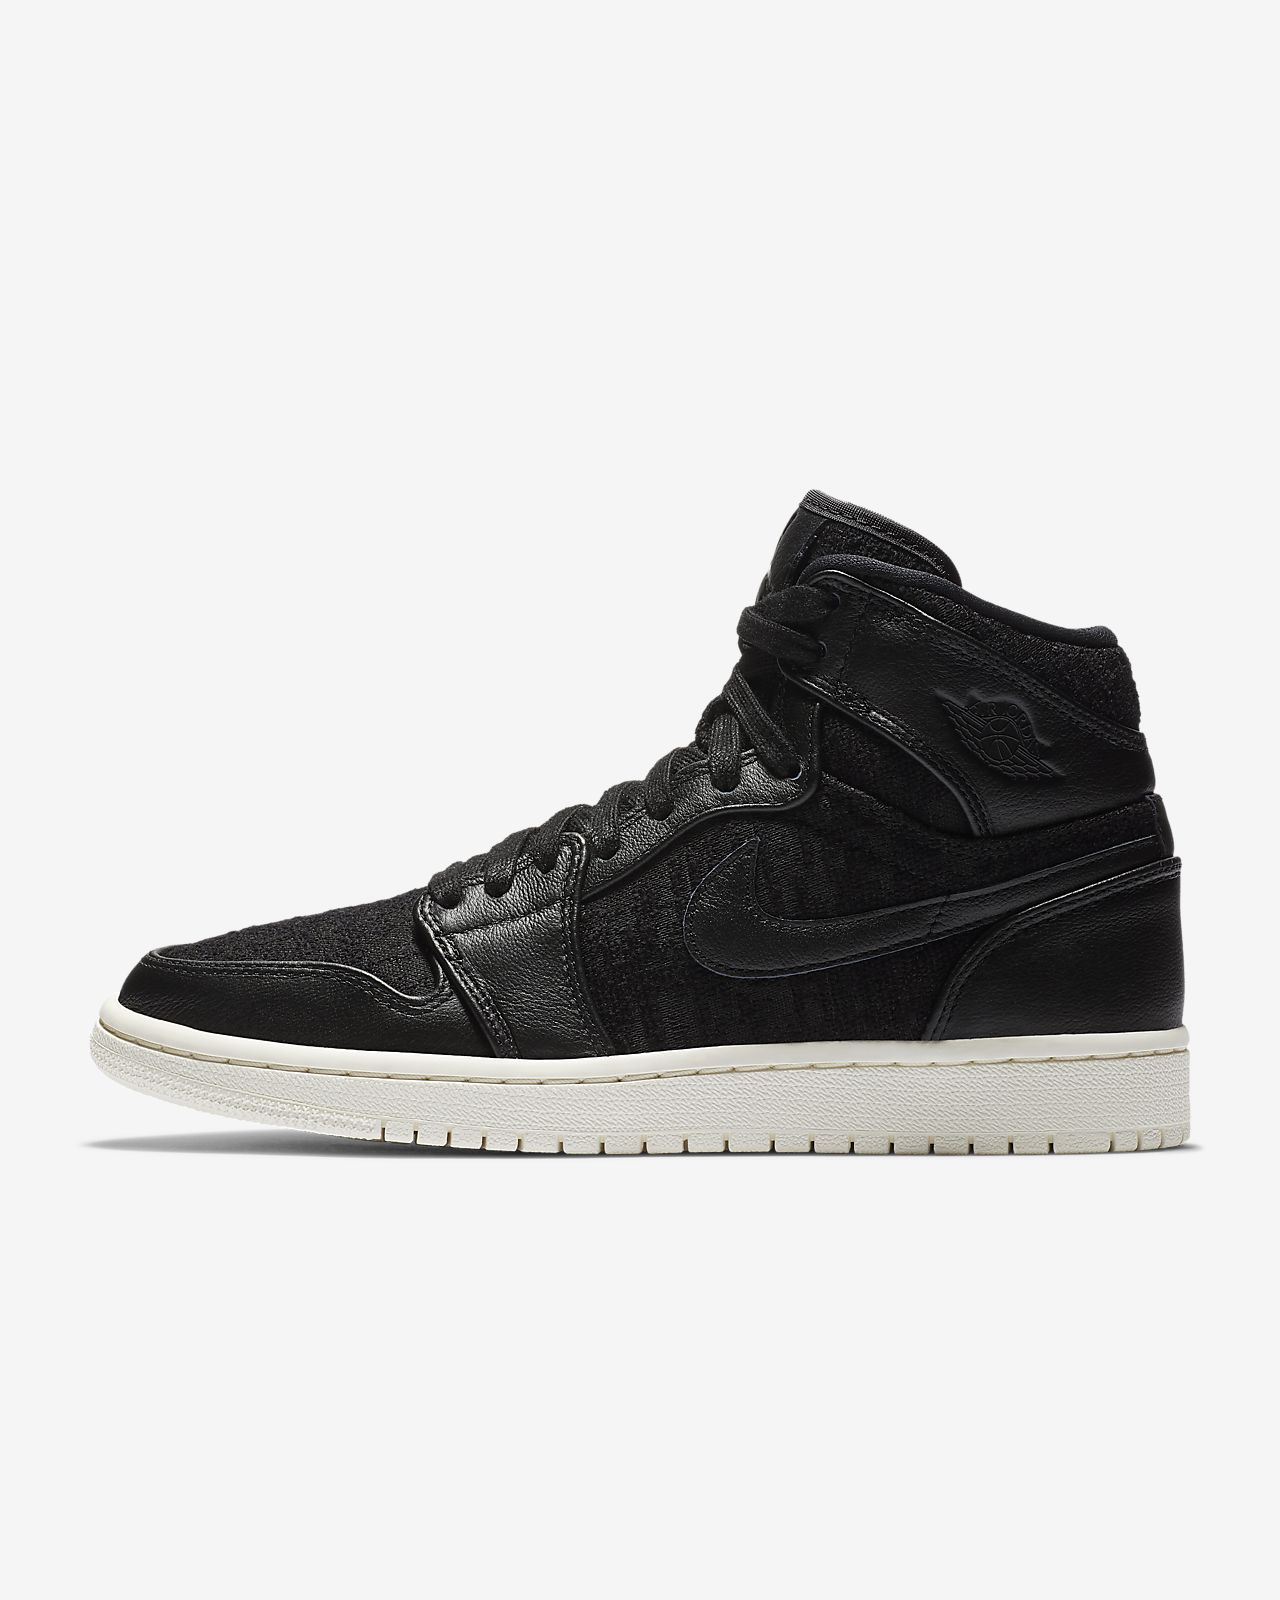 on sale 5138f ea66c ... Air Jordan 1 Retro High Premium Women s Shoe